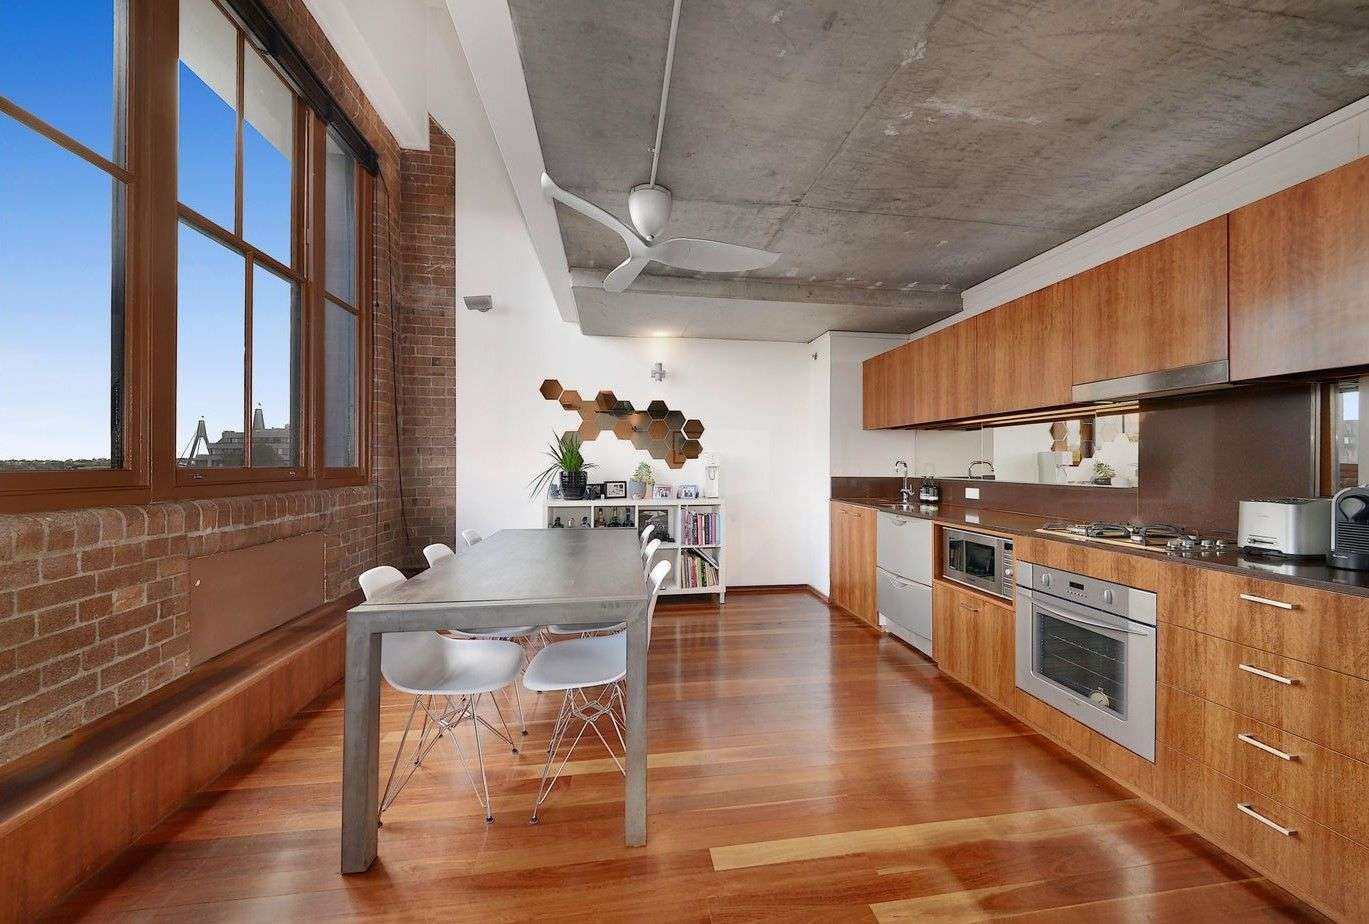 Main view of Homely apartment listing, 503/380 Harris Street, Pyrmont, NSW 2009